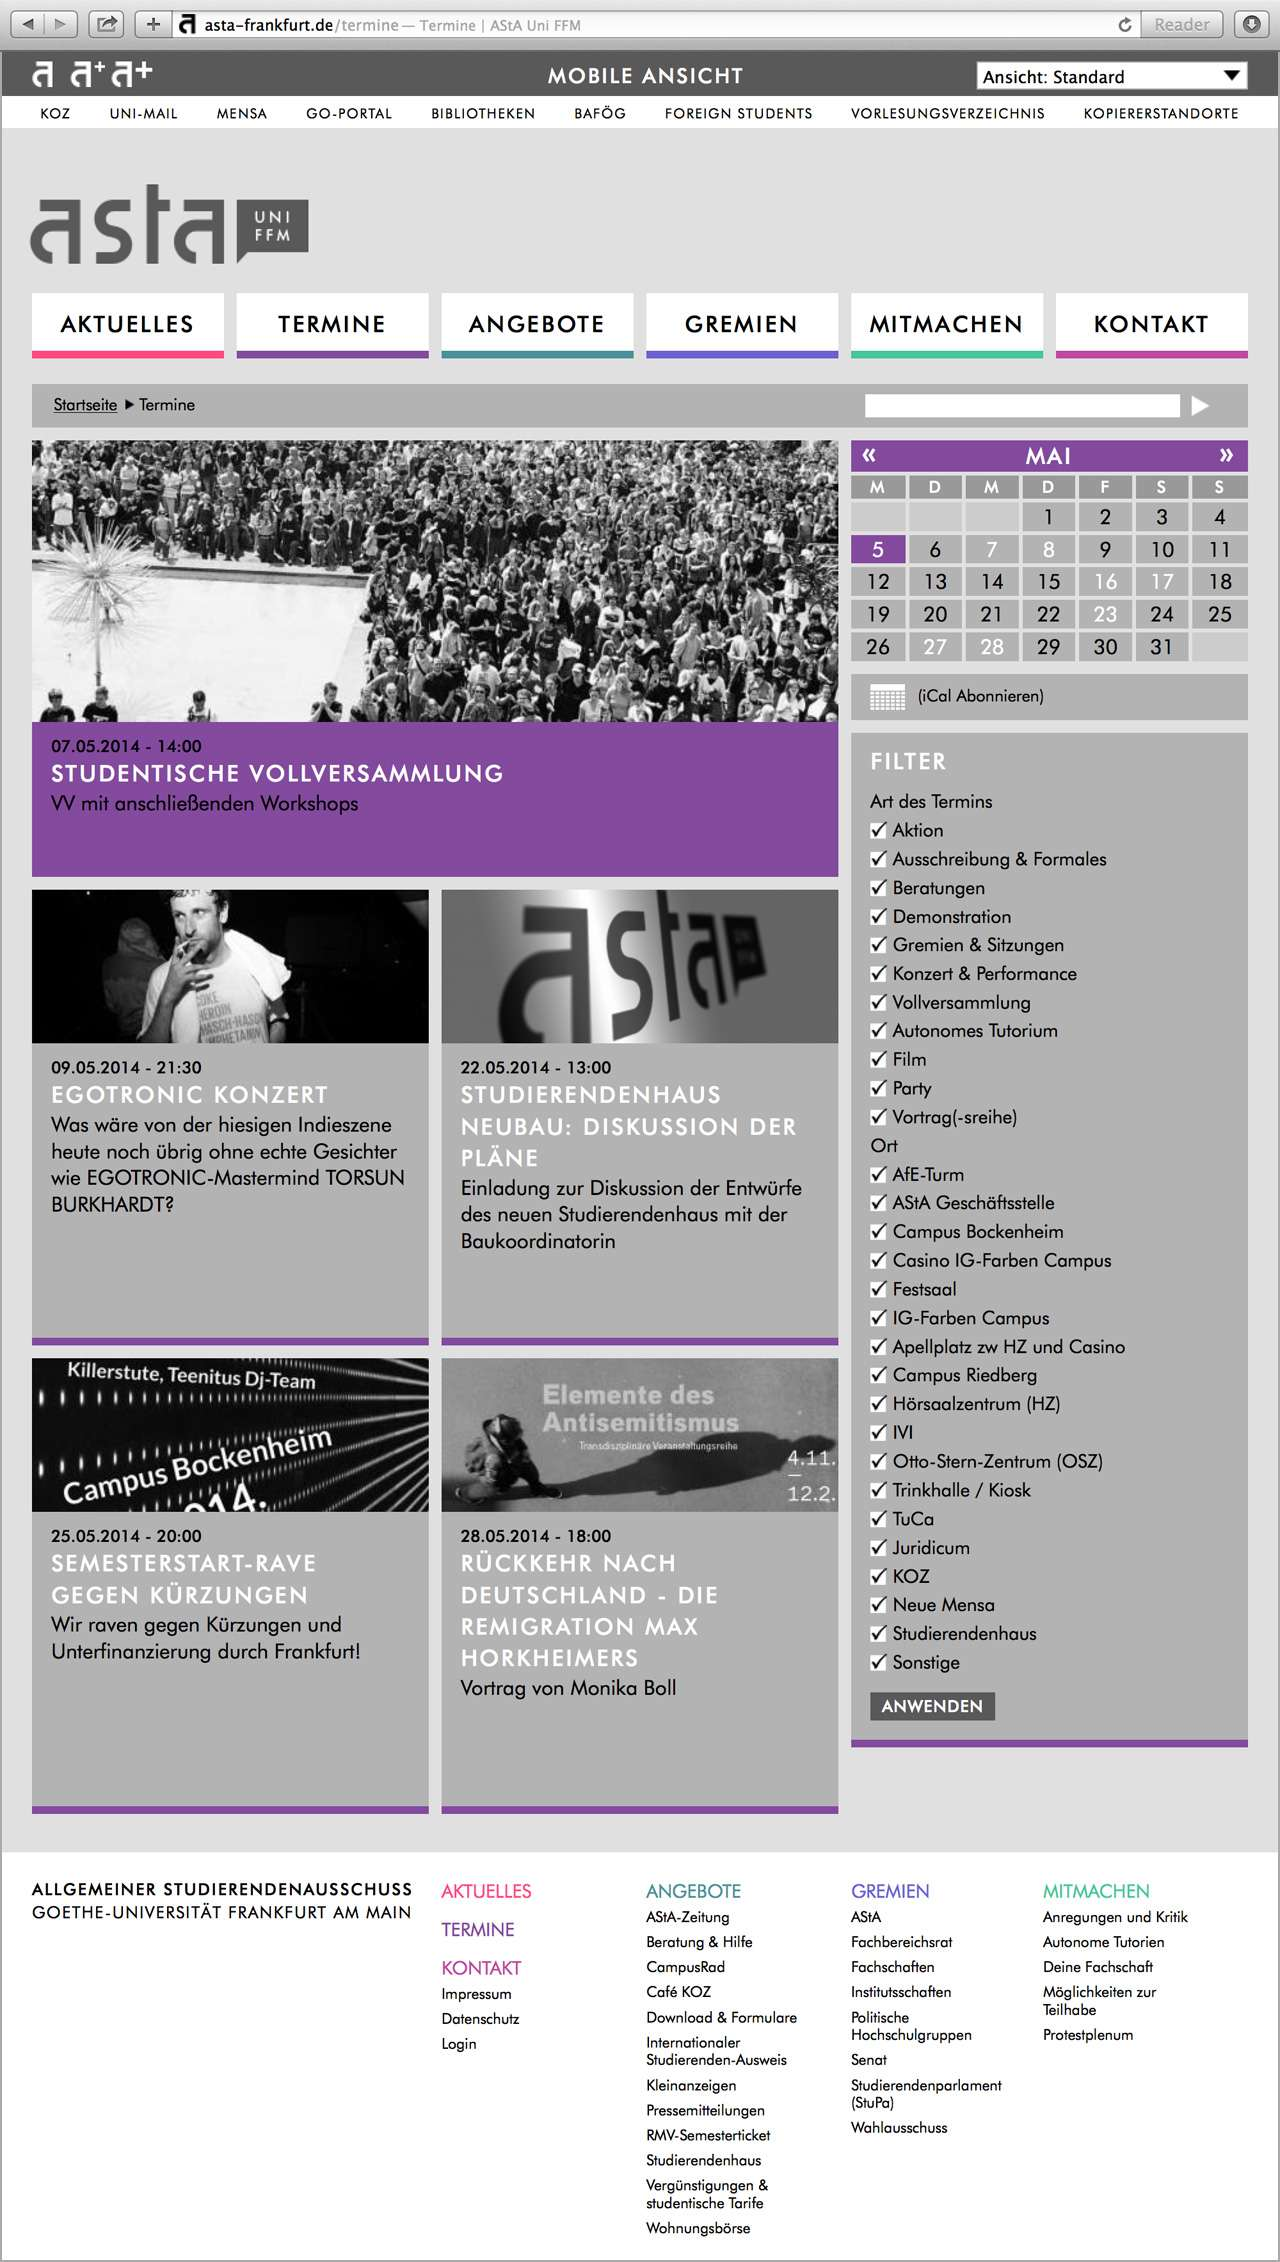 Screenshot der Terminseite der AStA-Website